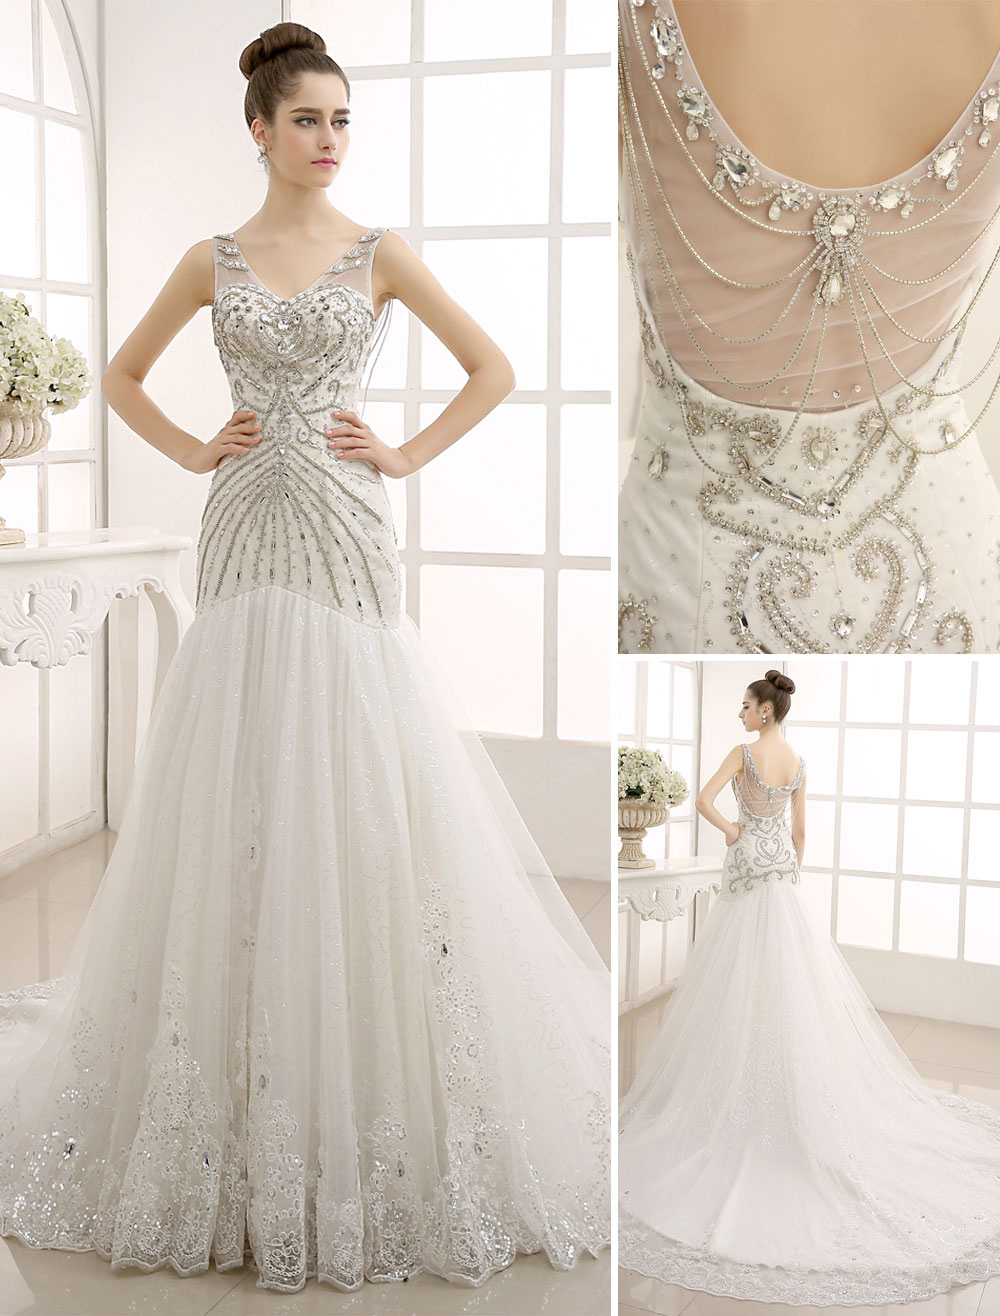 V-Neck Backless Mermaid Wedding Gown with Netting Milanoo